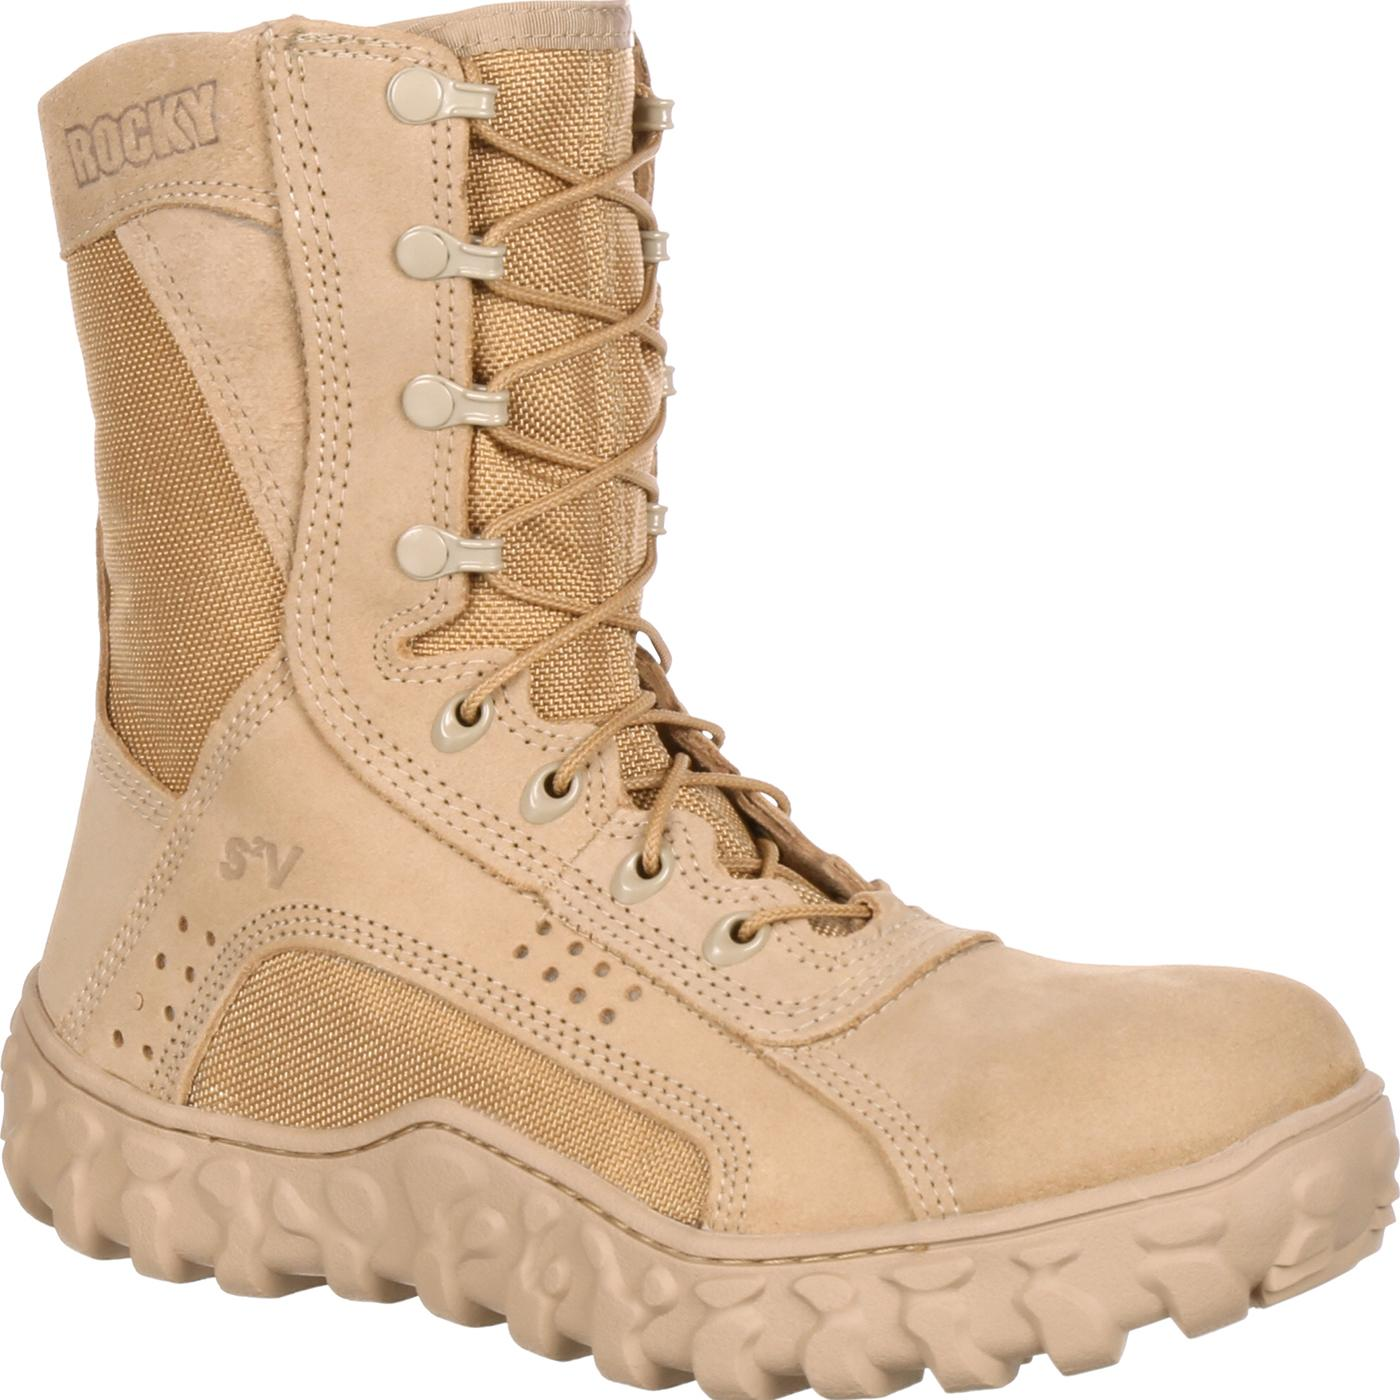 Rocky S2V Comfortable USA-Made Military Boot, FQ0000101